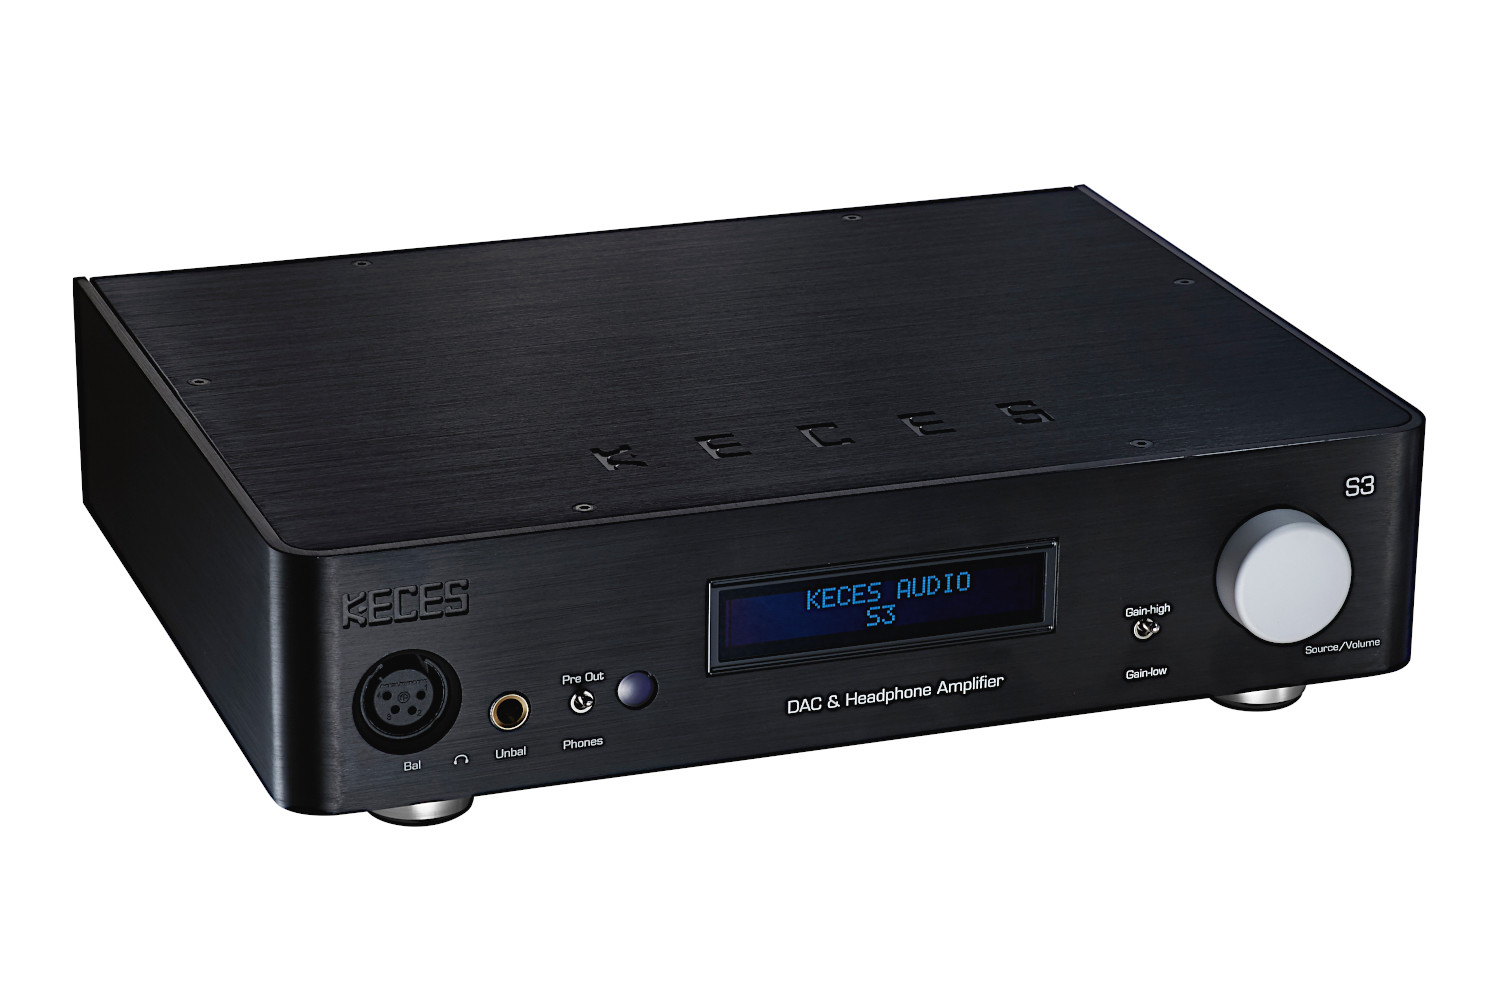 Keces S3 DAC Headphone Amplifier & Preamplifier